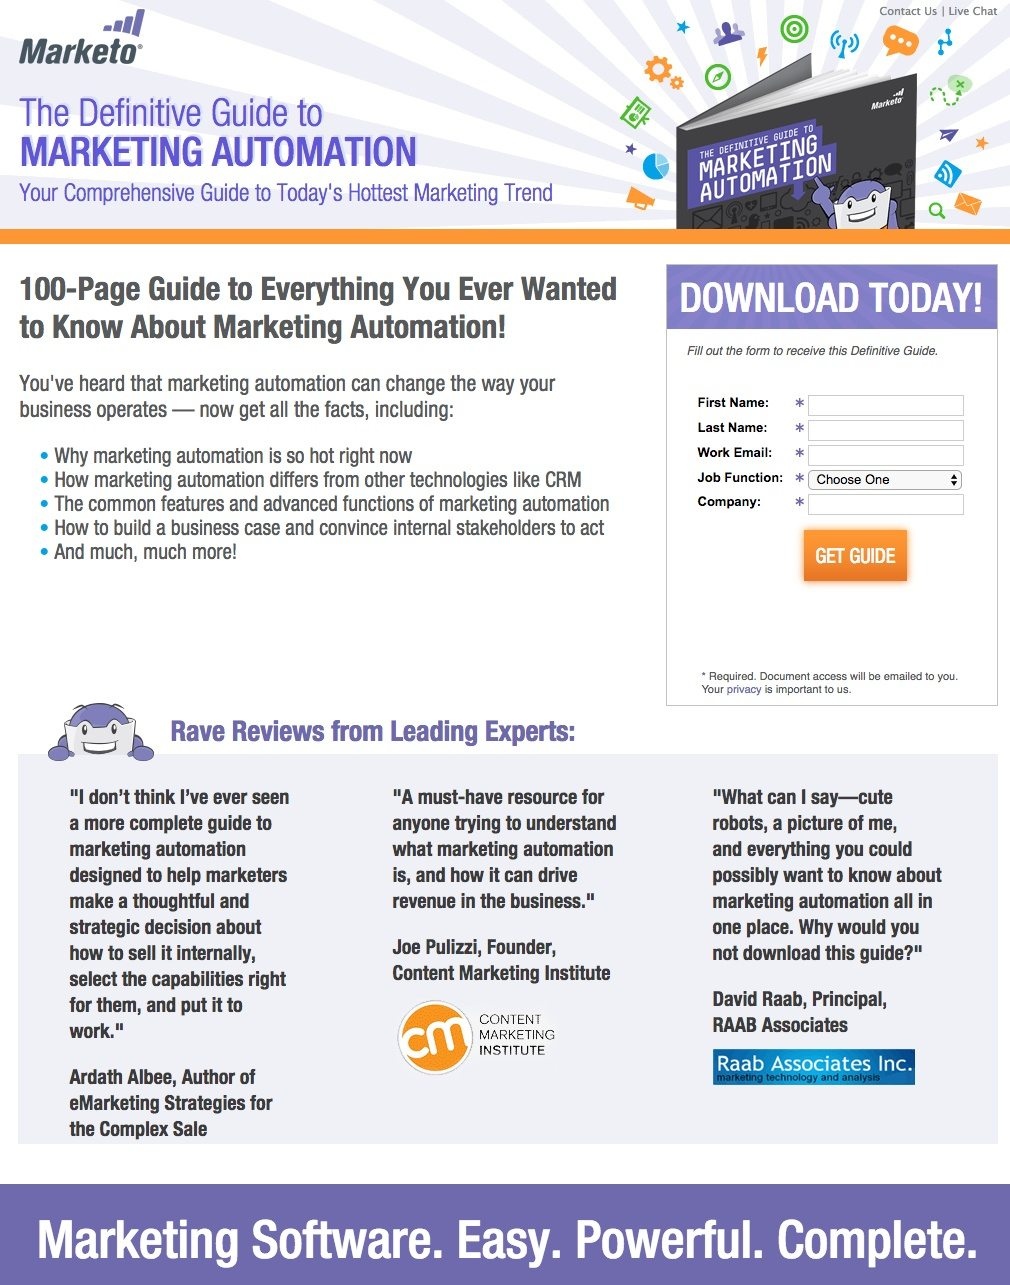 This picture shows how Marketo uses a landing page to generate leads and downloads from its marketing automation guide.